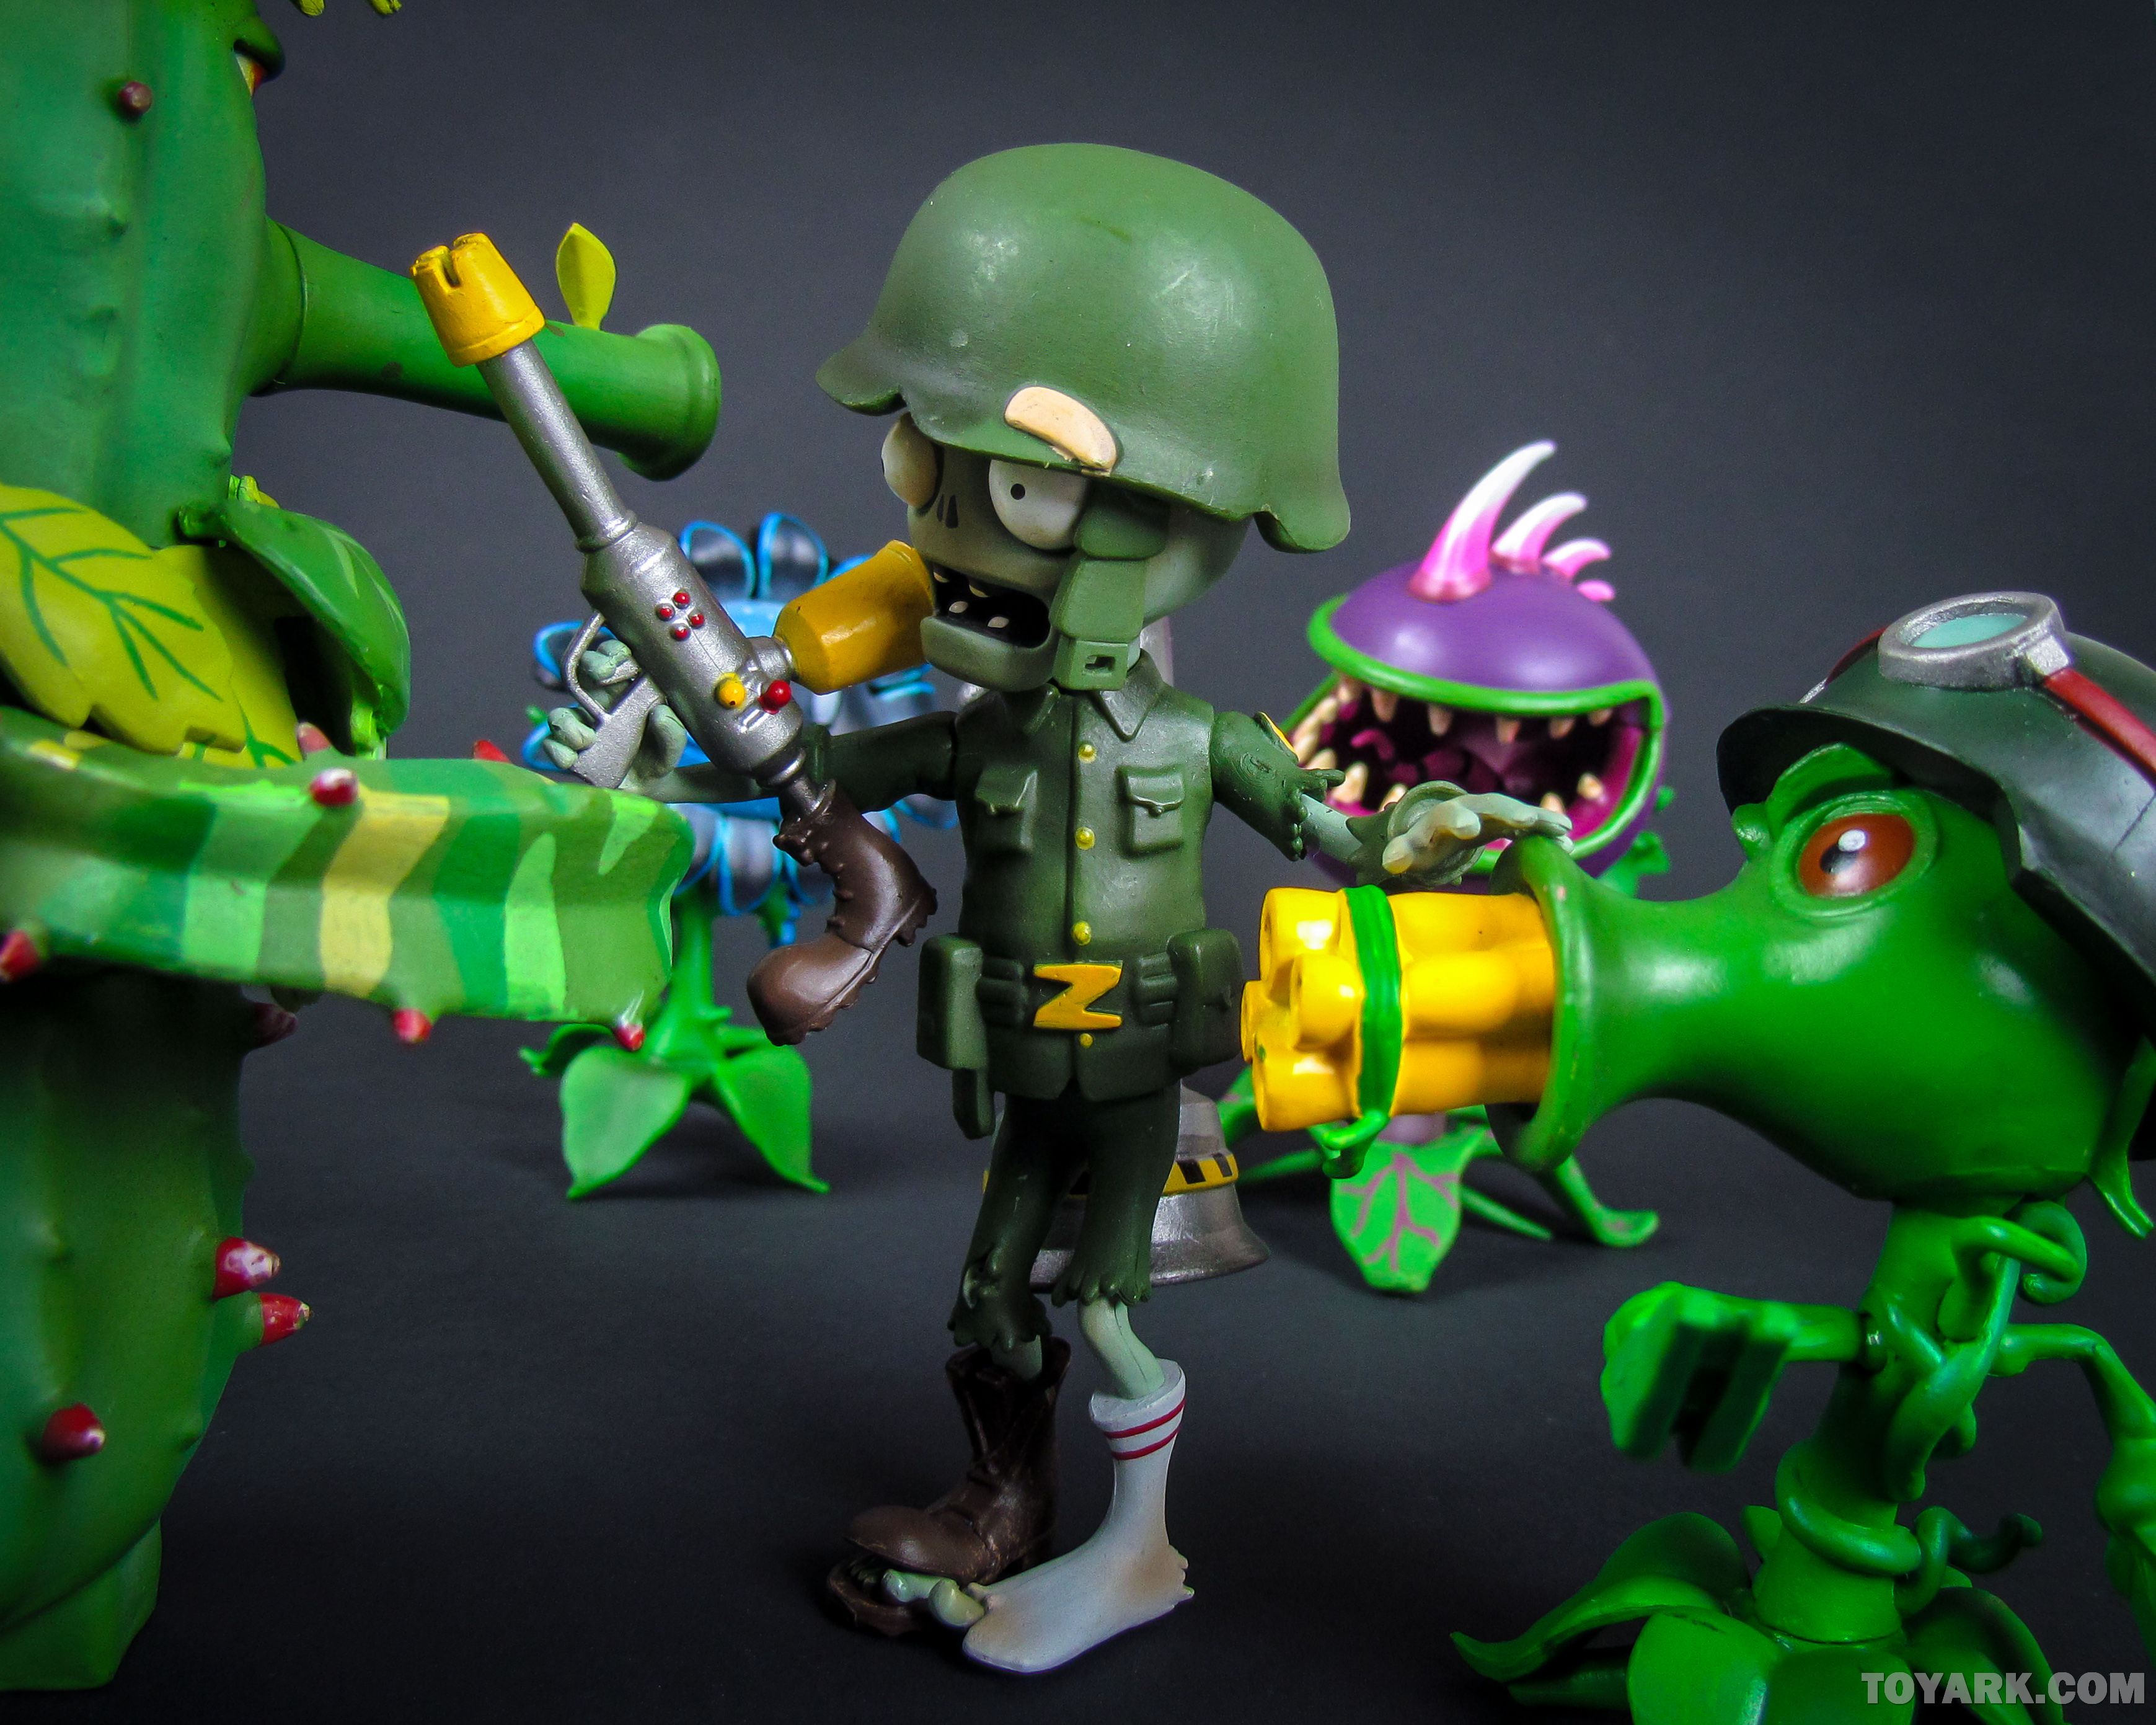 Toyark Gallery Dst Plants Vs Zombies Action Figures Toy Discussion At